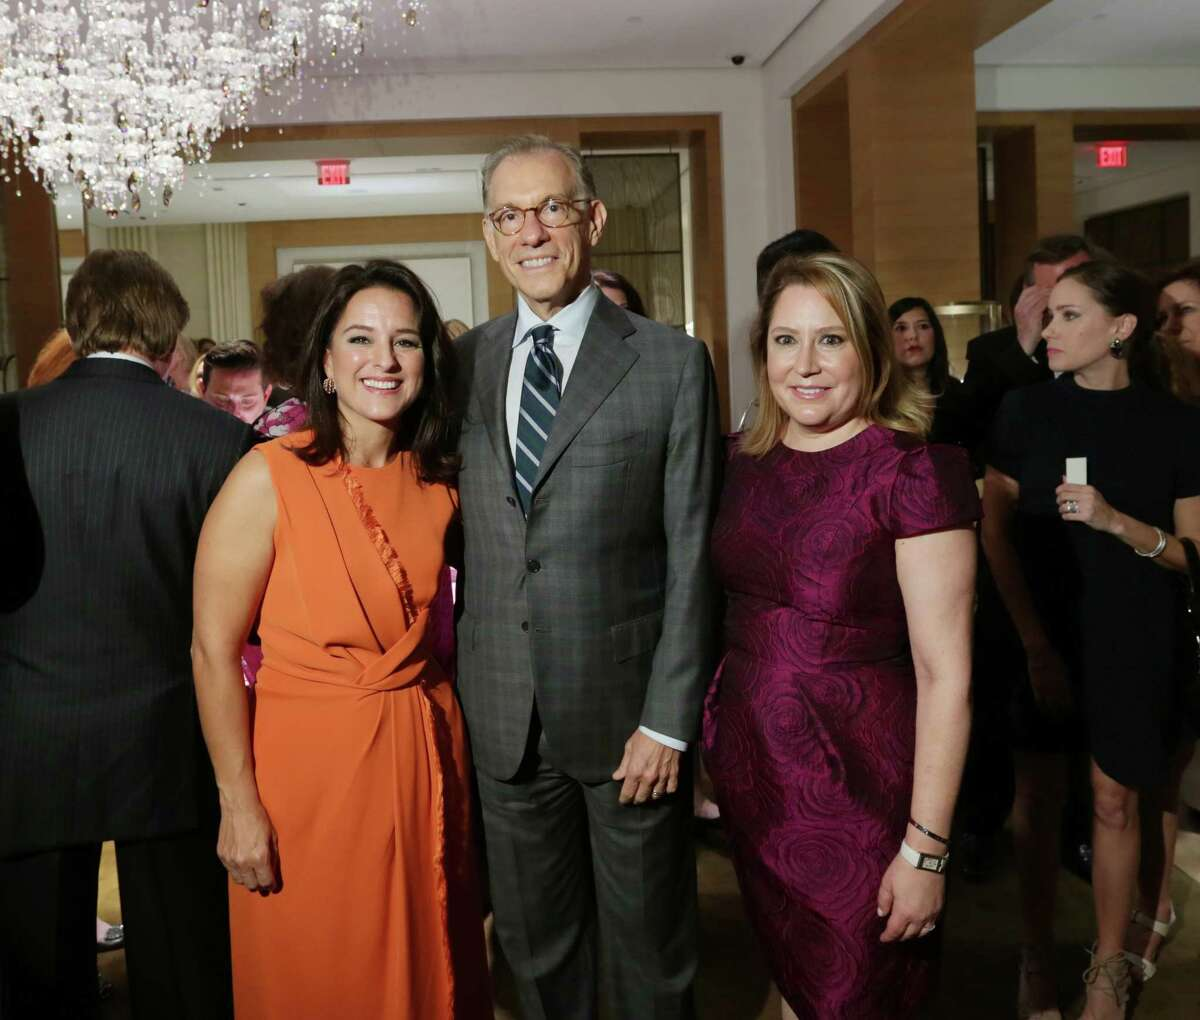 Mercedes Abramo, President and CEO of Cartier North America, Gary Tinterow, Director of the MFAH, and Kari Gonzales, boutique director